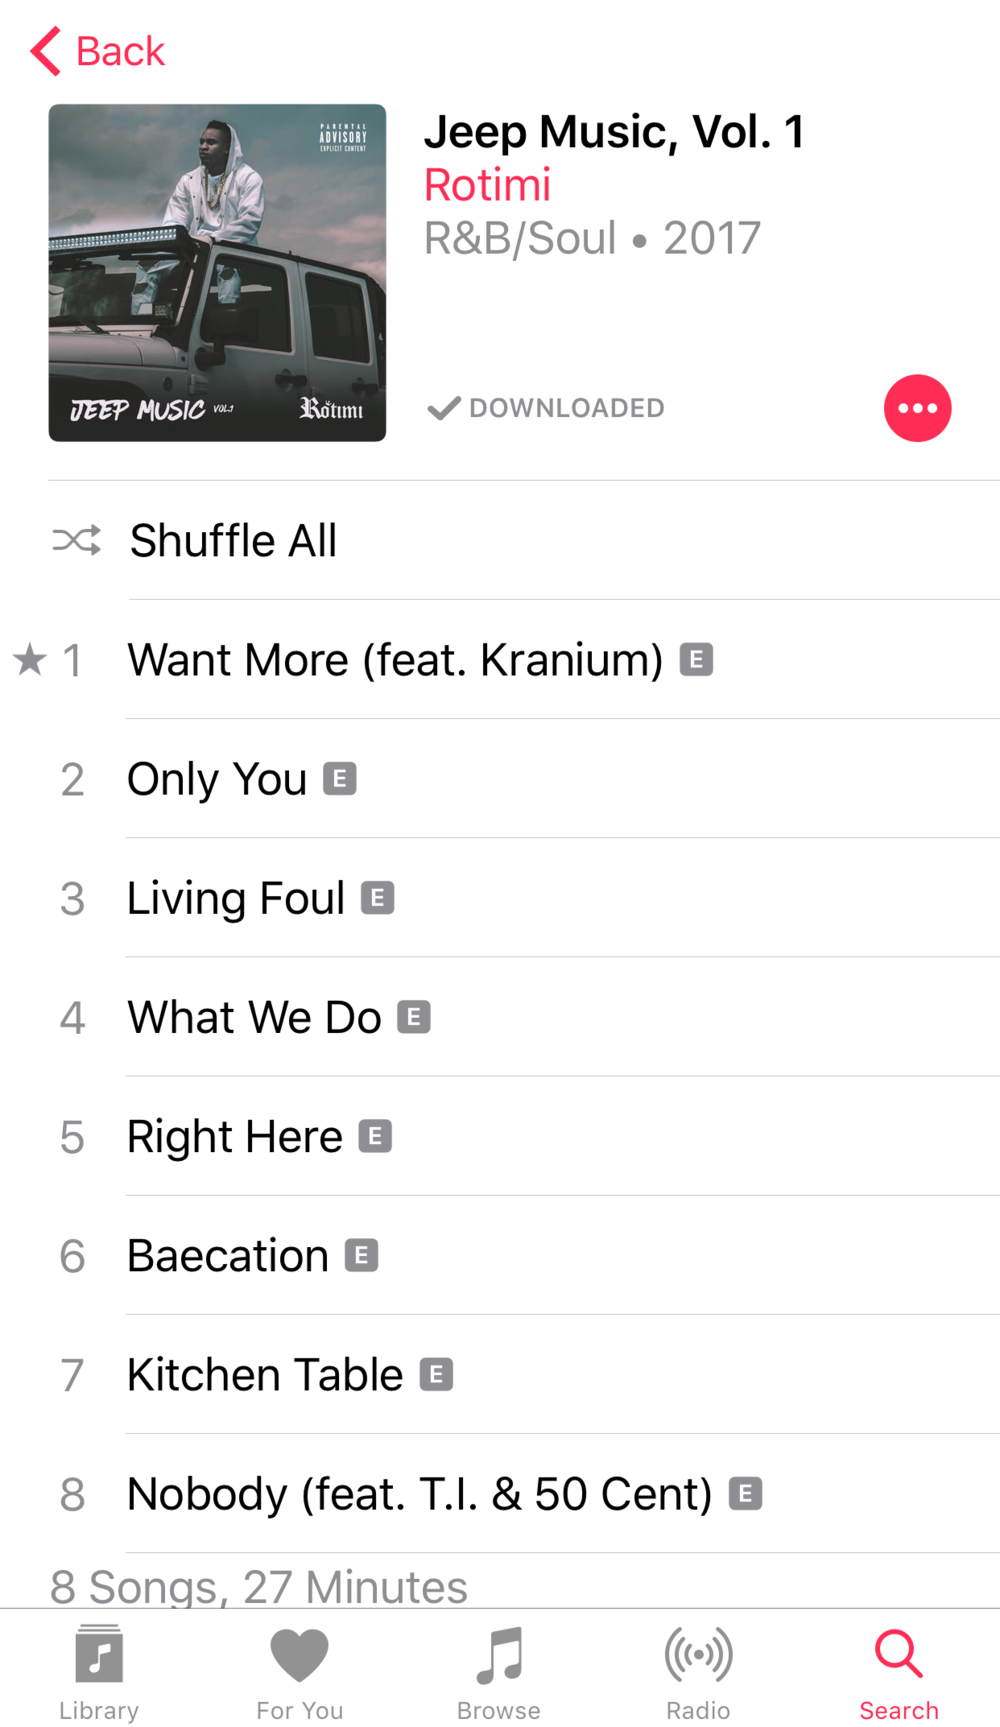 - I have personally listened to his music and I can honestly say that he has a really nice voice and this last body of work gives me some really good R&B vibes, that we can all use right about now. Check out his album cover and track list shown here and definitely give it a listen. It's pretty dope.